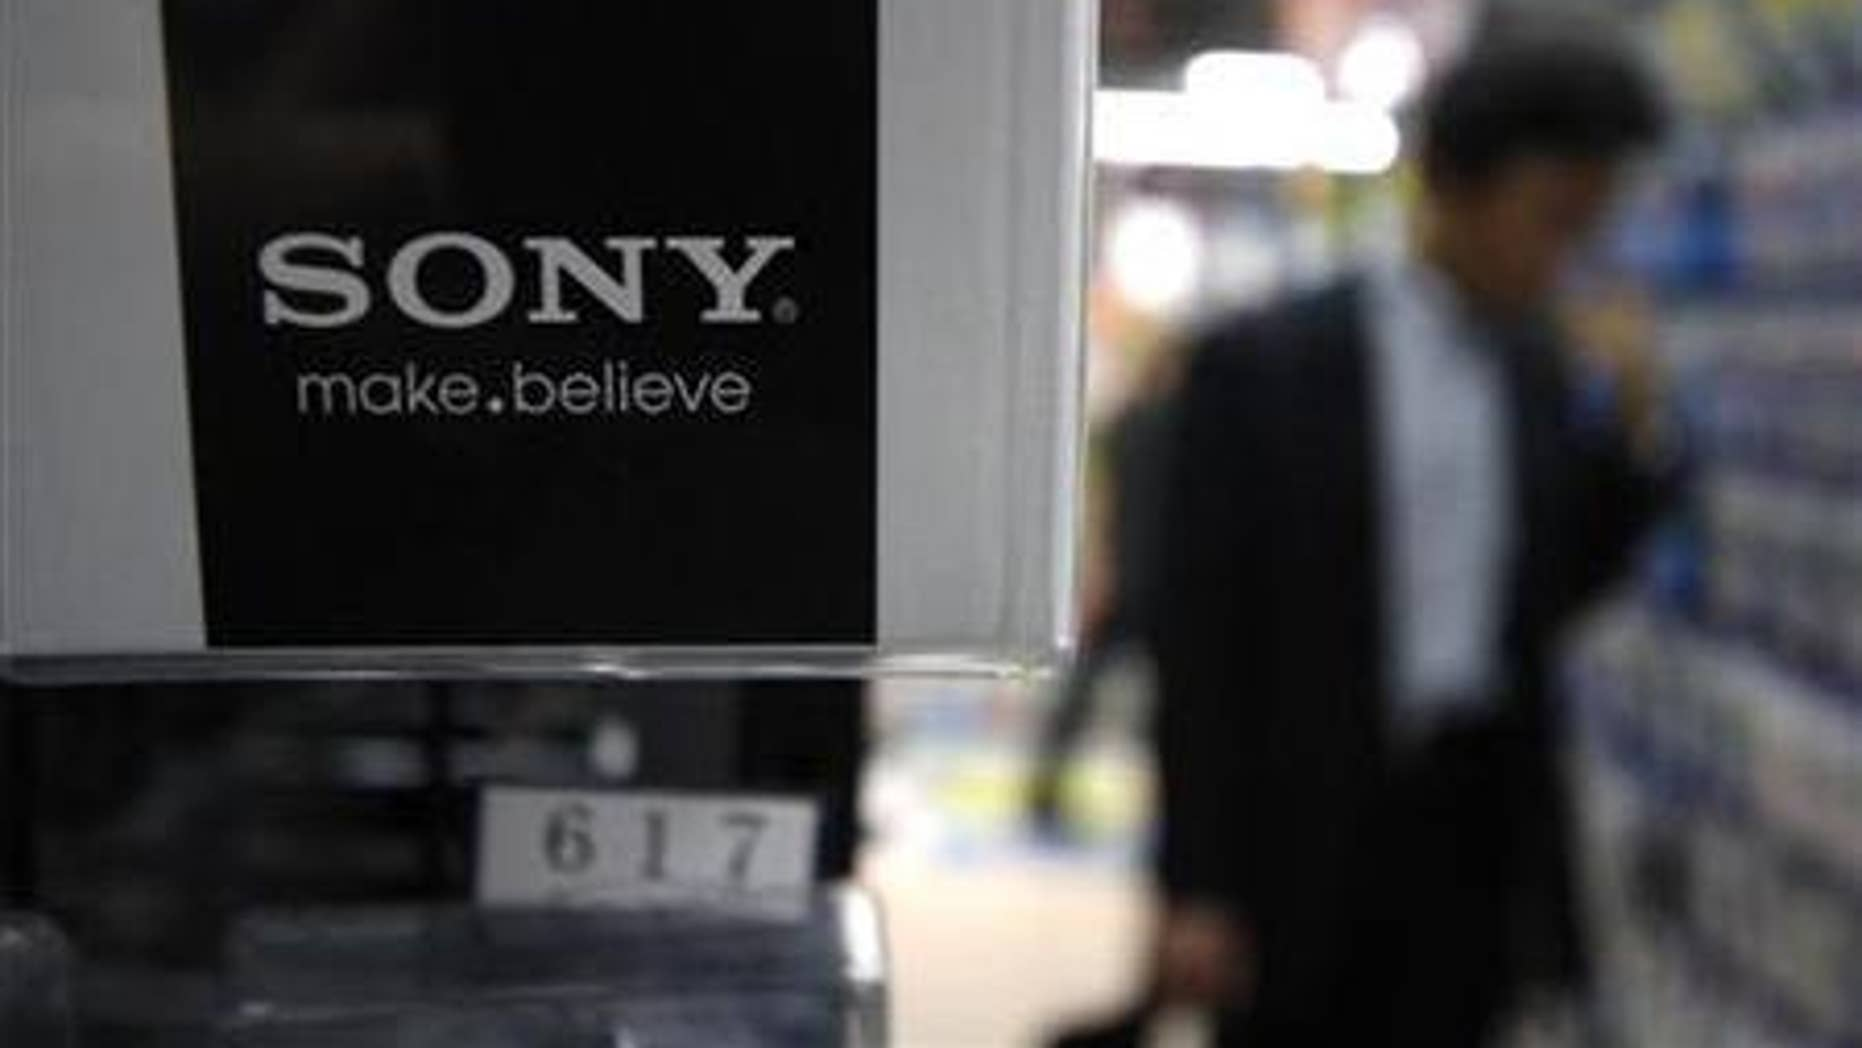 A man looks at Sony Corp's products at an electronics store in Tokyo May 26, 2011.